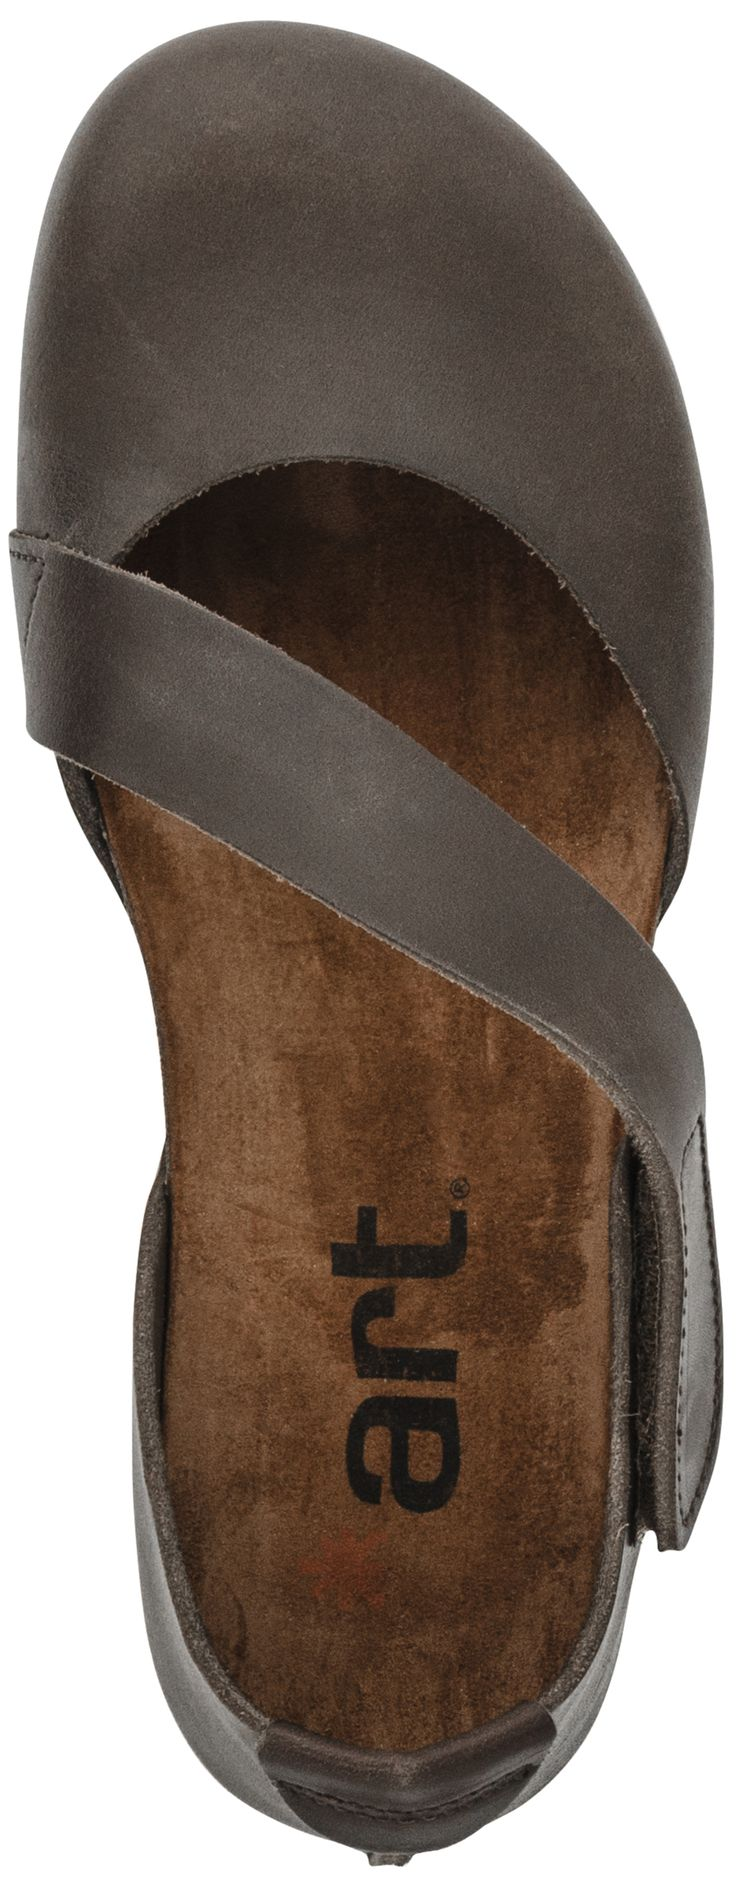 Would be a great traveling shoe. http://www.planetshoes.com/mmplanet/Images/22361/22361_157_zoom5.jpg                                                                                                                                                     More